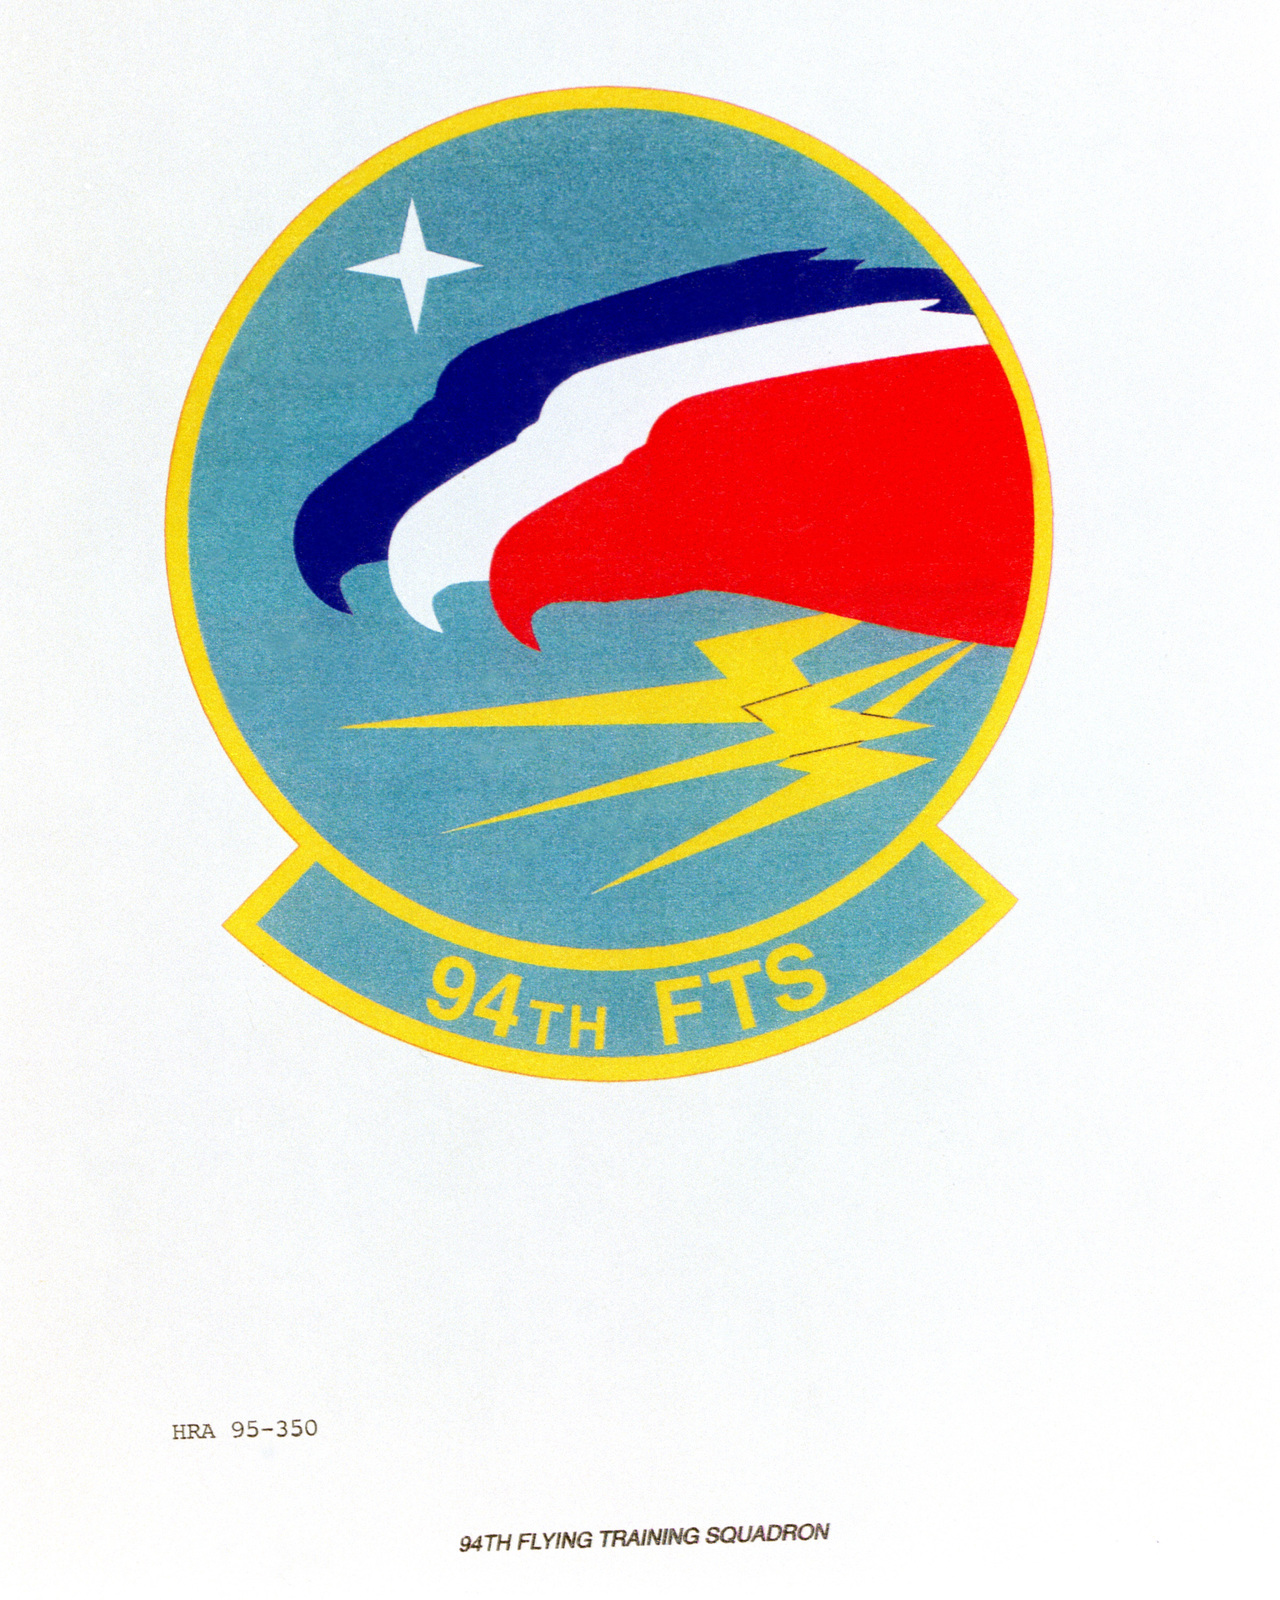 Approved Insignia for the 94th Flying Training Squadron Exact Date Shot Unknown